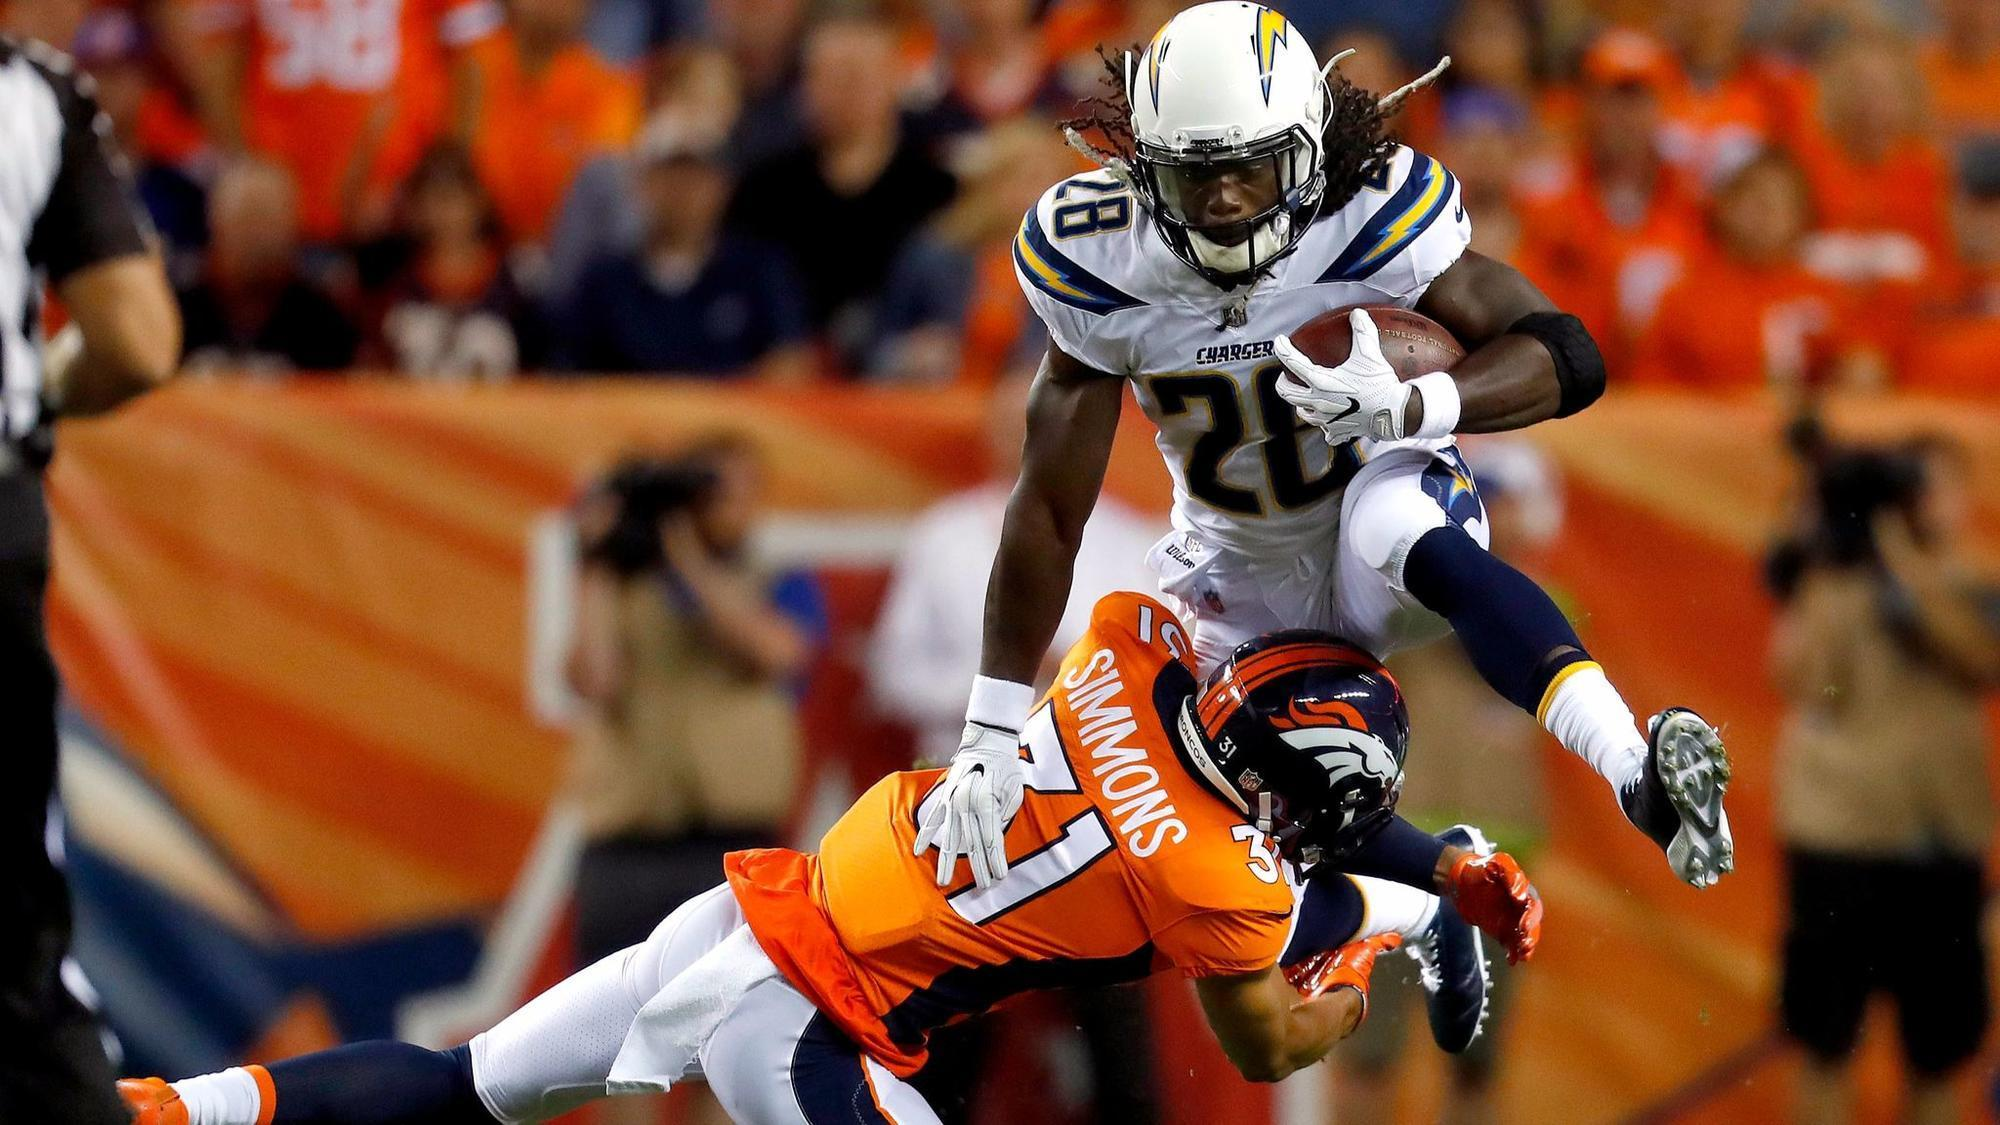 Chargers Passing Game Starting To Pay Off On Ground The